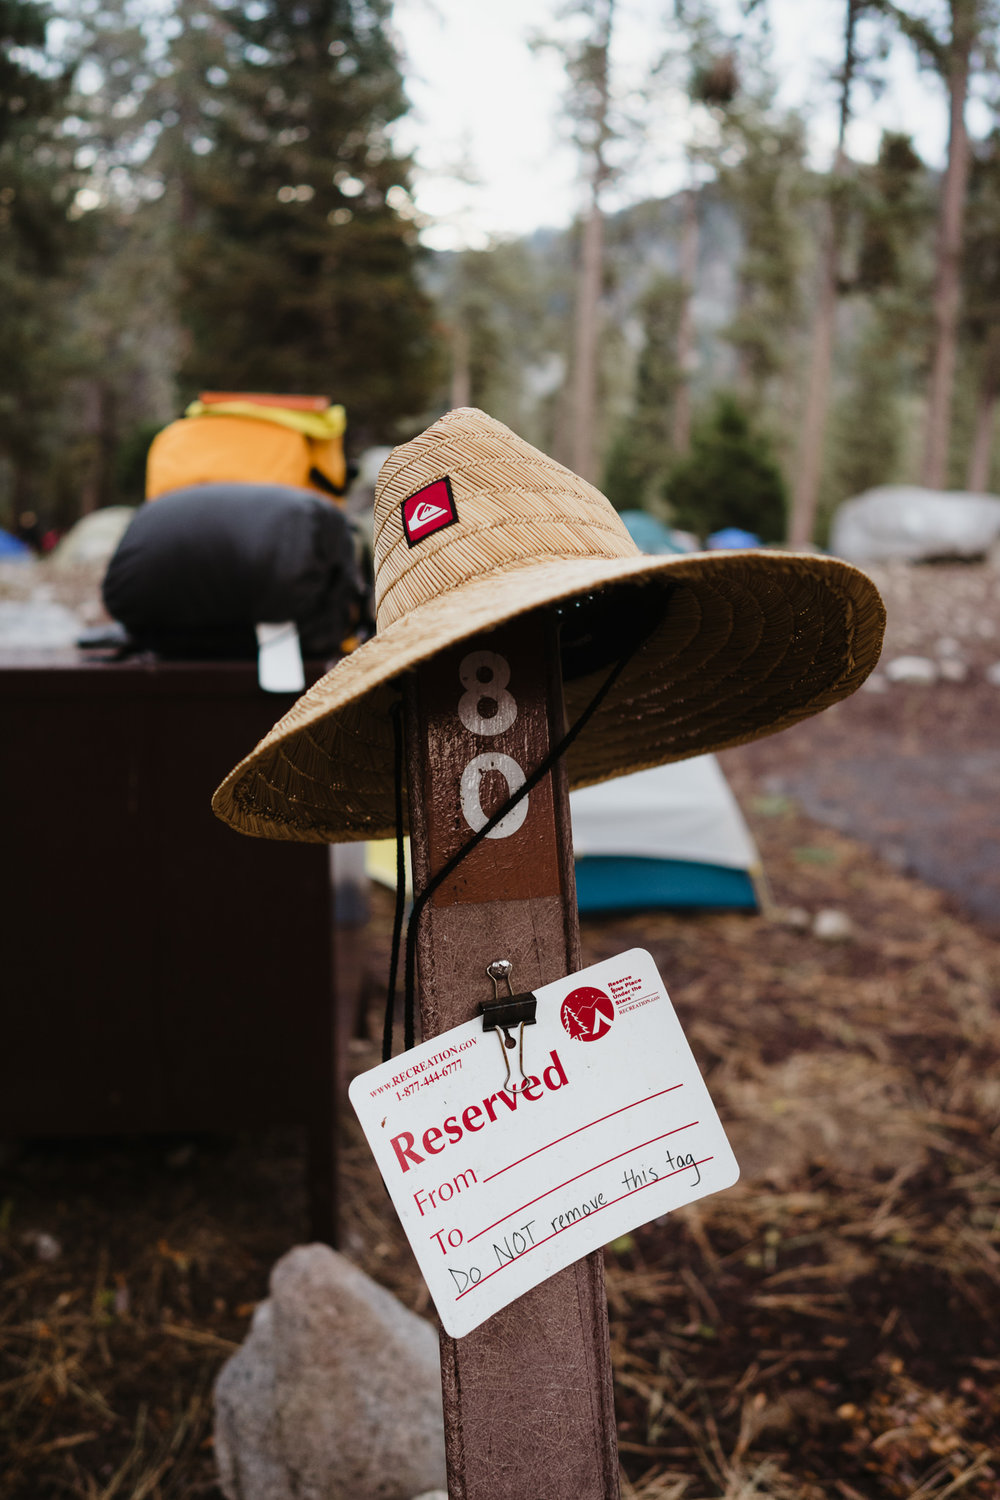 20170903-Shoestring-Adventures-Camping-Sequoia-38.jpg